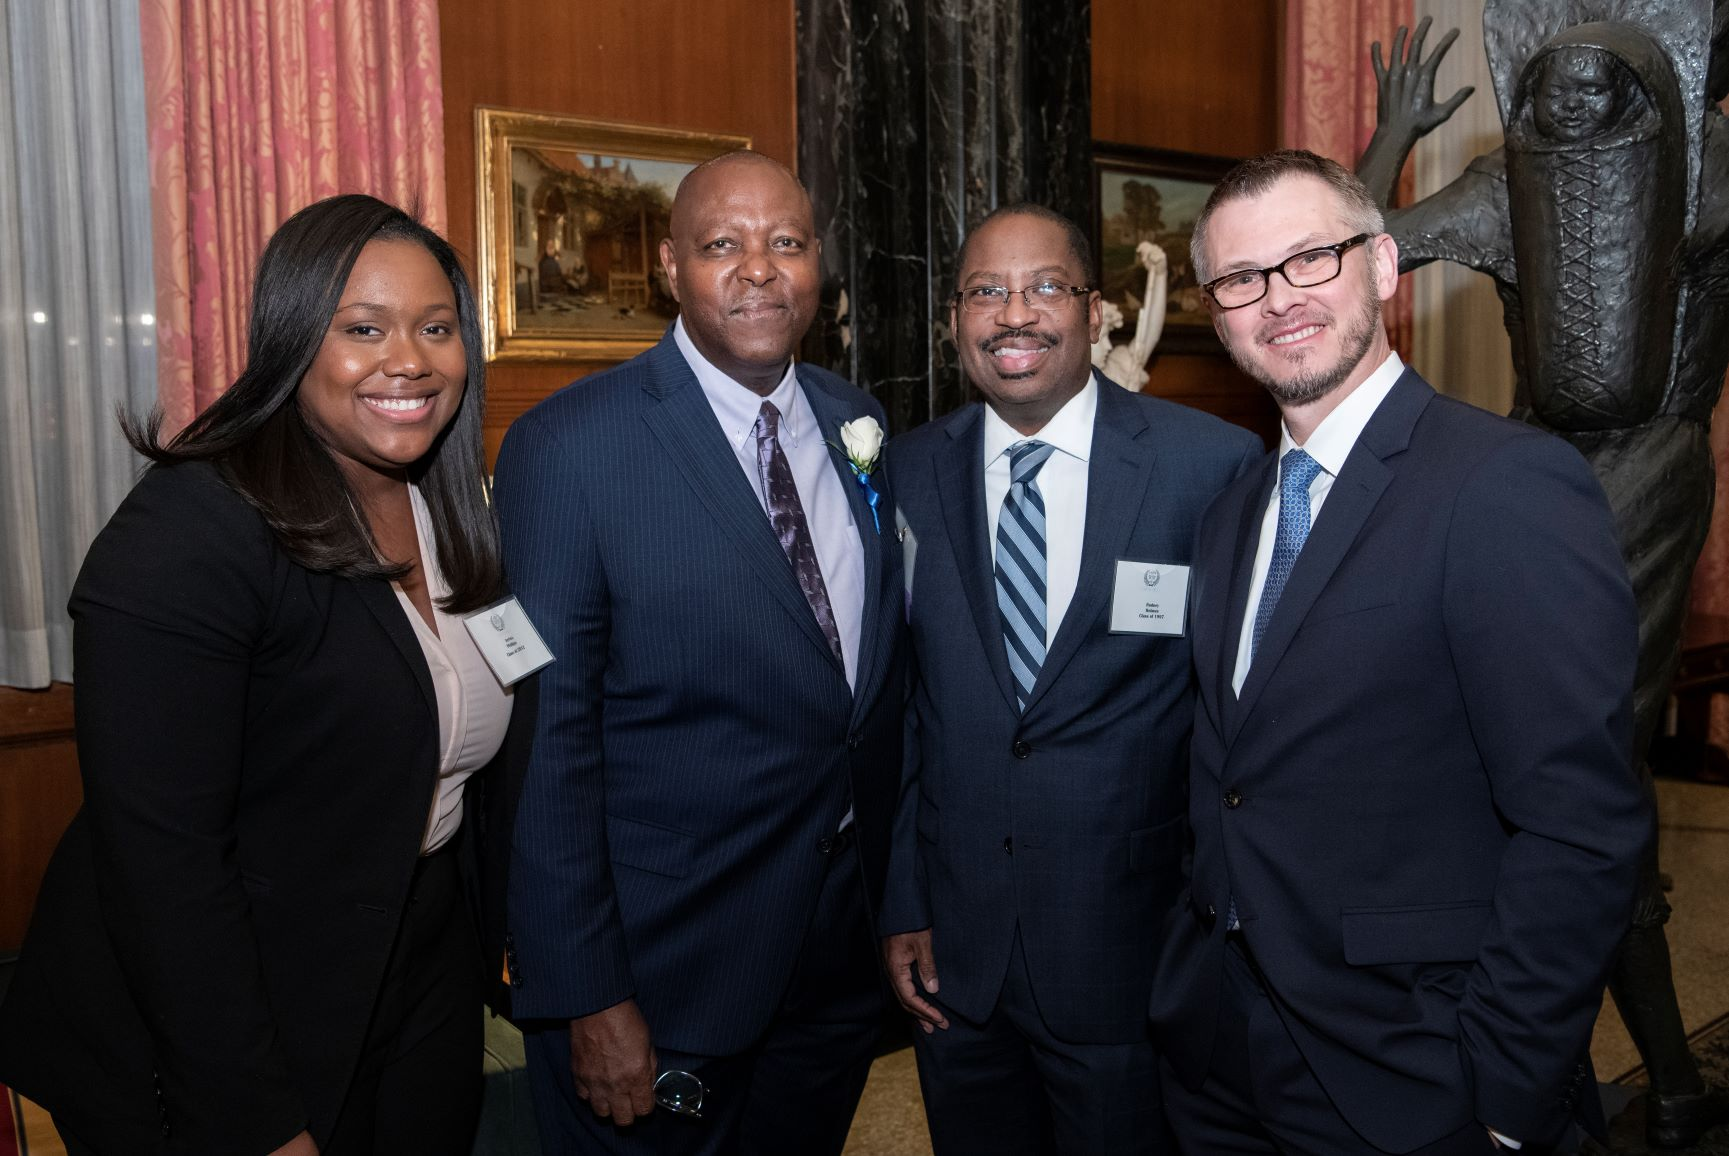 Order of the Fleur de Lis Hall of Fame honoree Judge Donald Wilkerson, Melvin Kennedy and Abigail Willie were appointed by Dean William Johnson.